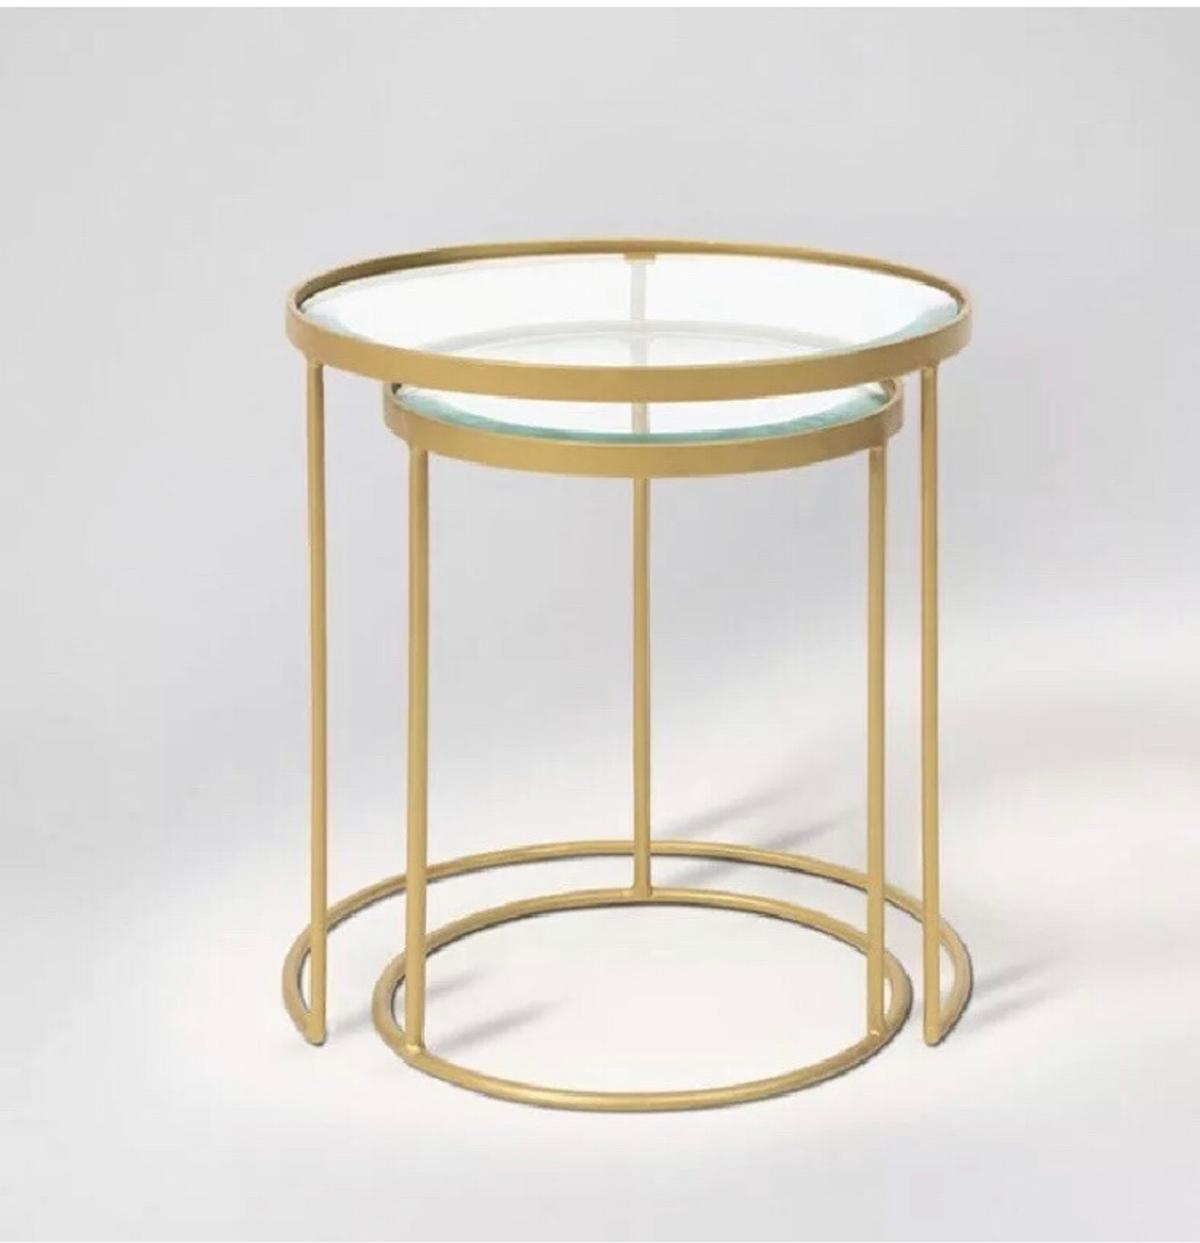 Swoon Seymour Nesting Tables Boxed In Cw10 Byley For 119 00 For